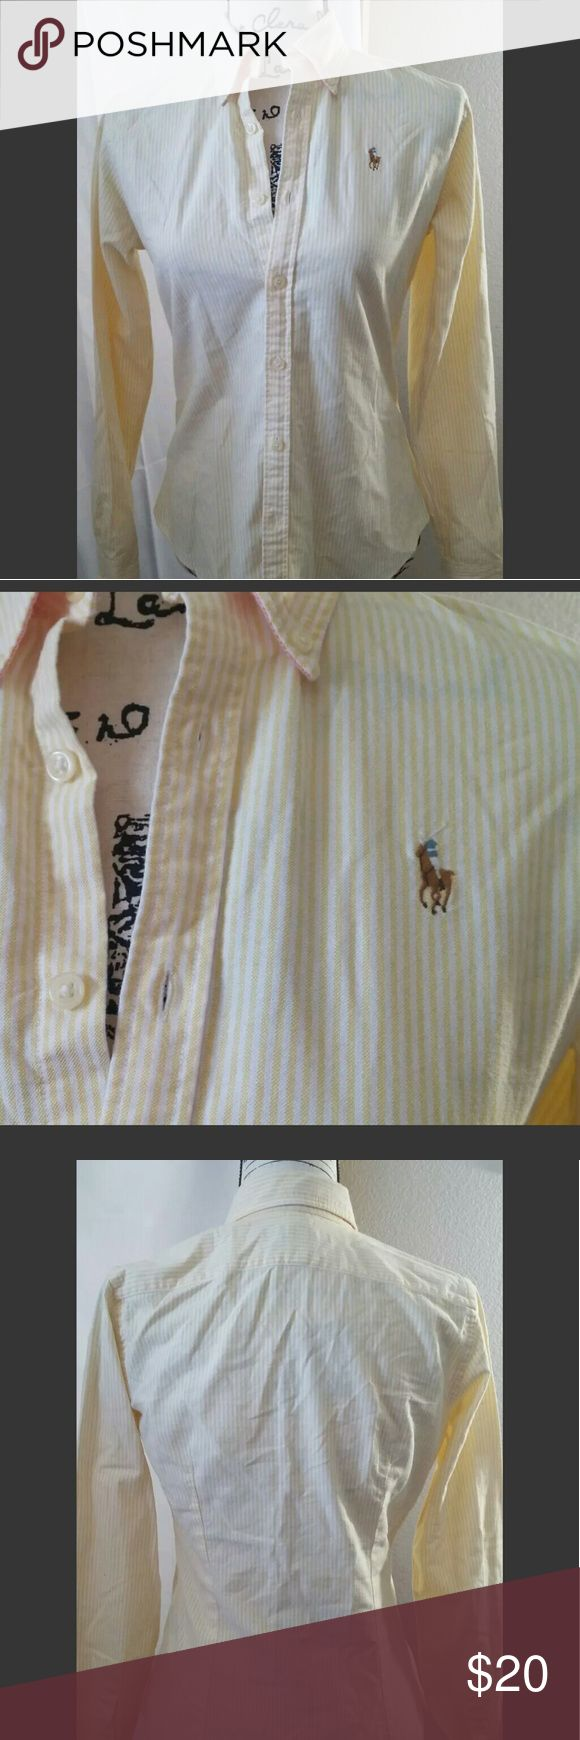 "Sz 4 Ralph Lauren slim fit yellow dress shirt Ralph Lauren slim fit yellow/white striped long sleeve button-down collared dress shirt. 100% cotton. Polo logo on left breast.   Size 4 - 25"" long, 18"" pit to pit, 29"" waist.  274/clo2 Ralph Lauren Tops Button Down Shirts"